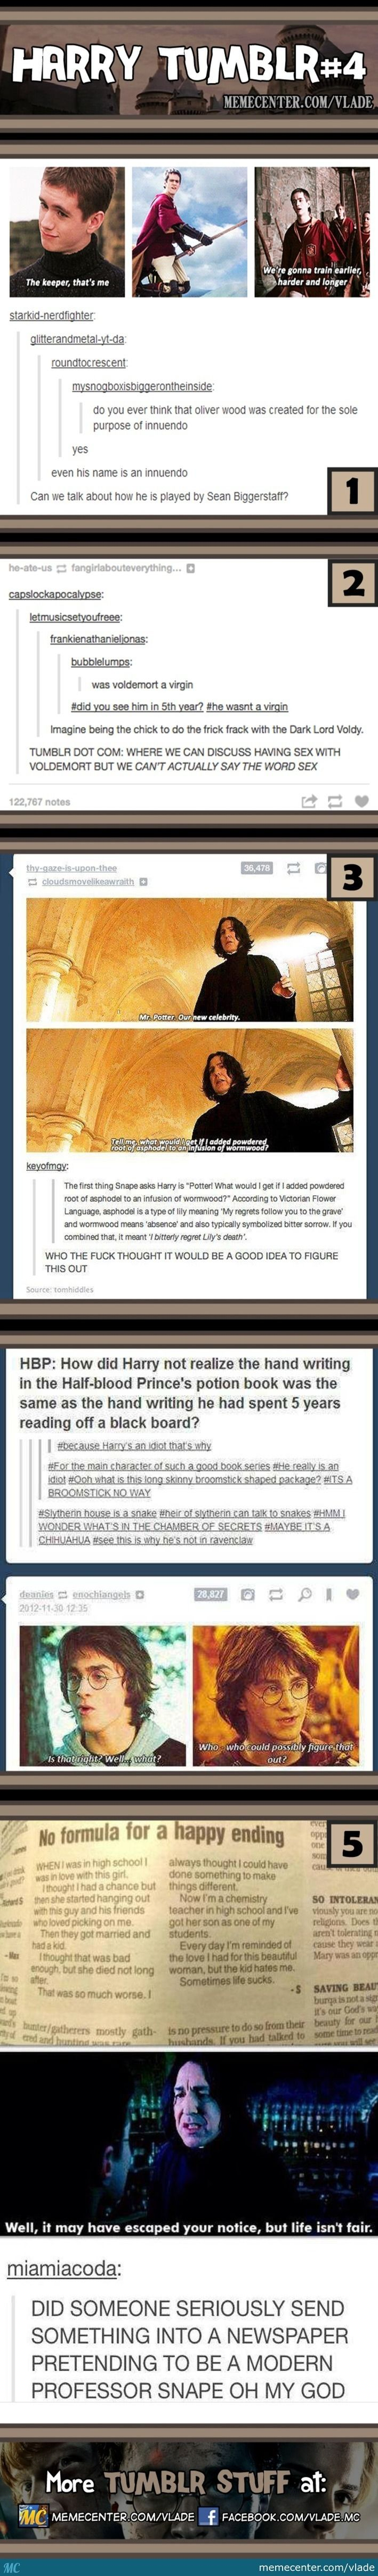 HP fandom on tumblr is the best